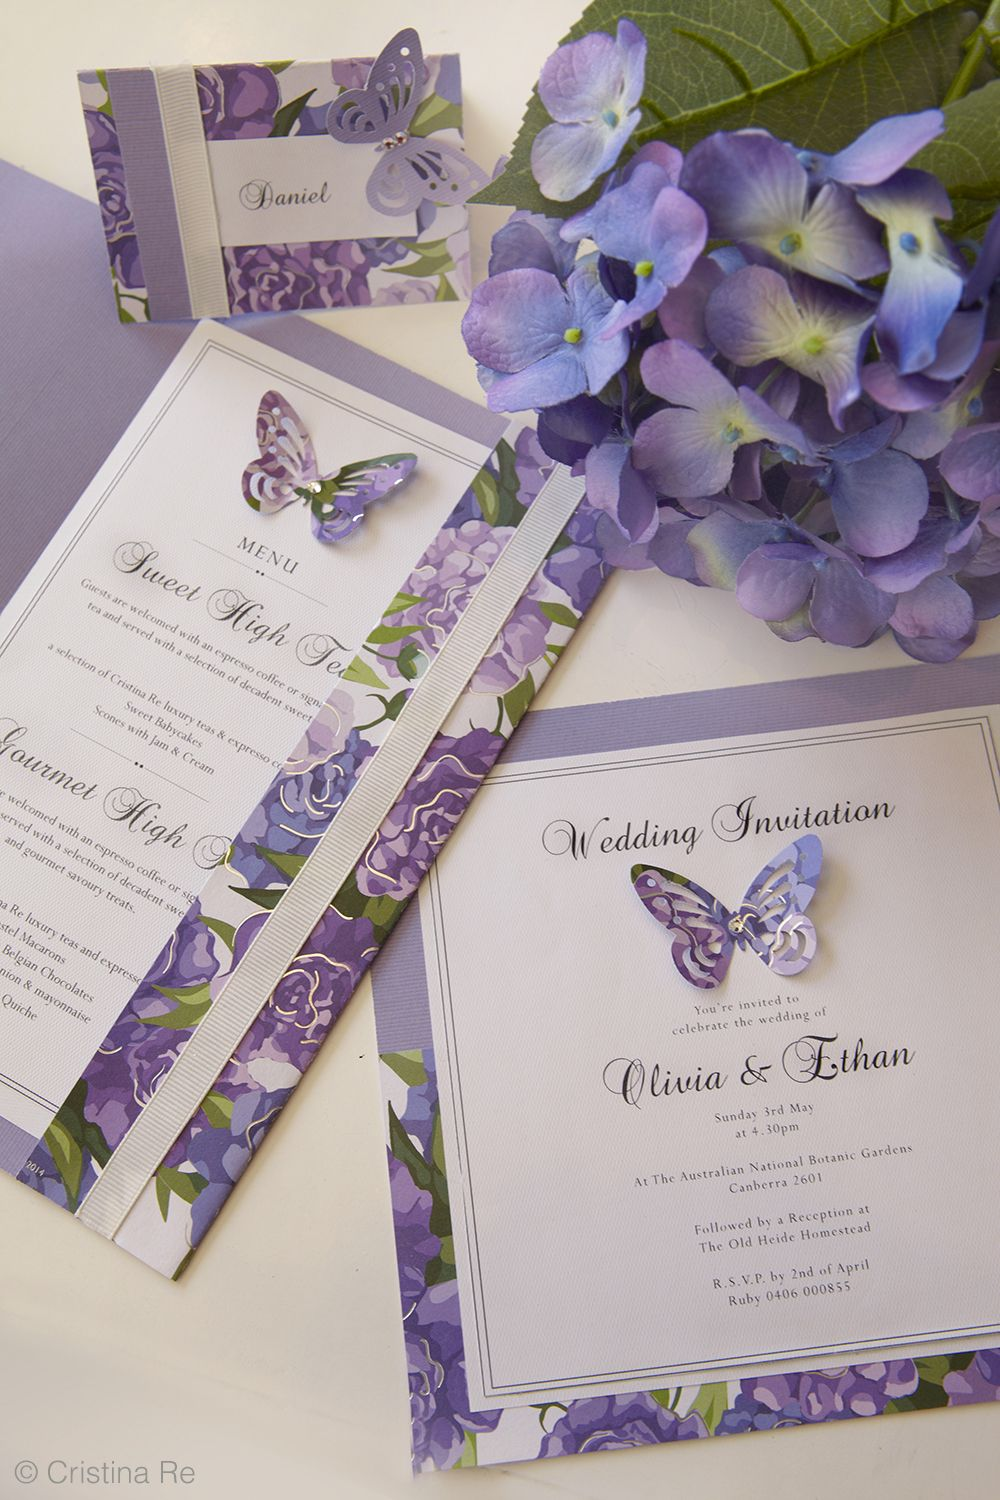 #PurplePeony #Designer #PaperChic #Paper and #Accessories by #CristinaRe for #Officeworks http://www.officeworks.com.au/retail/products/Paper/Invitations-and-Cards/Designer-Paper Chic: (a). #stylish, #elegant, and #fashionable #love #craft #paper #design #invitations #wedding #invite #DIY #butterfly #purple #peony www.cristinare.com www.officeworks.com.au